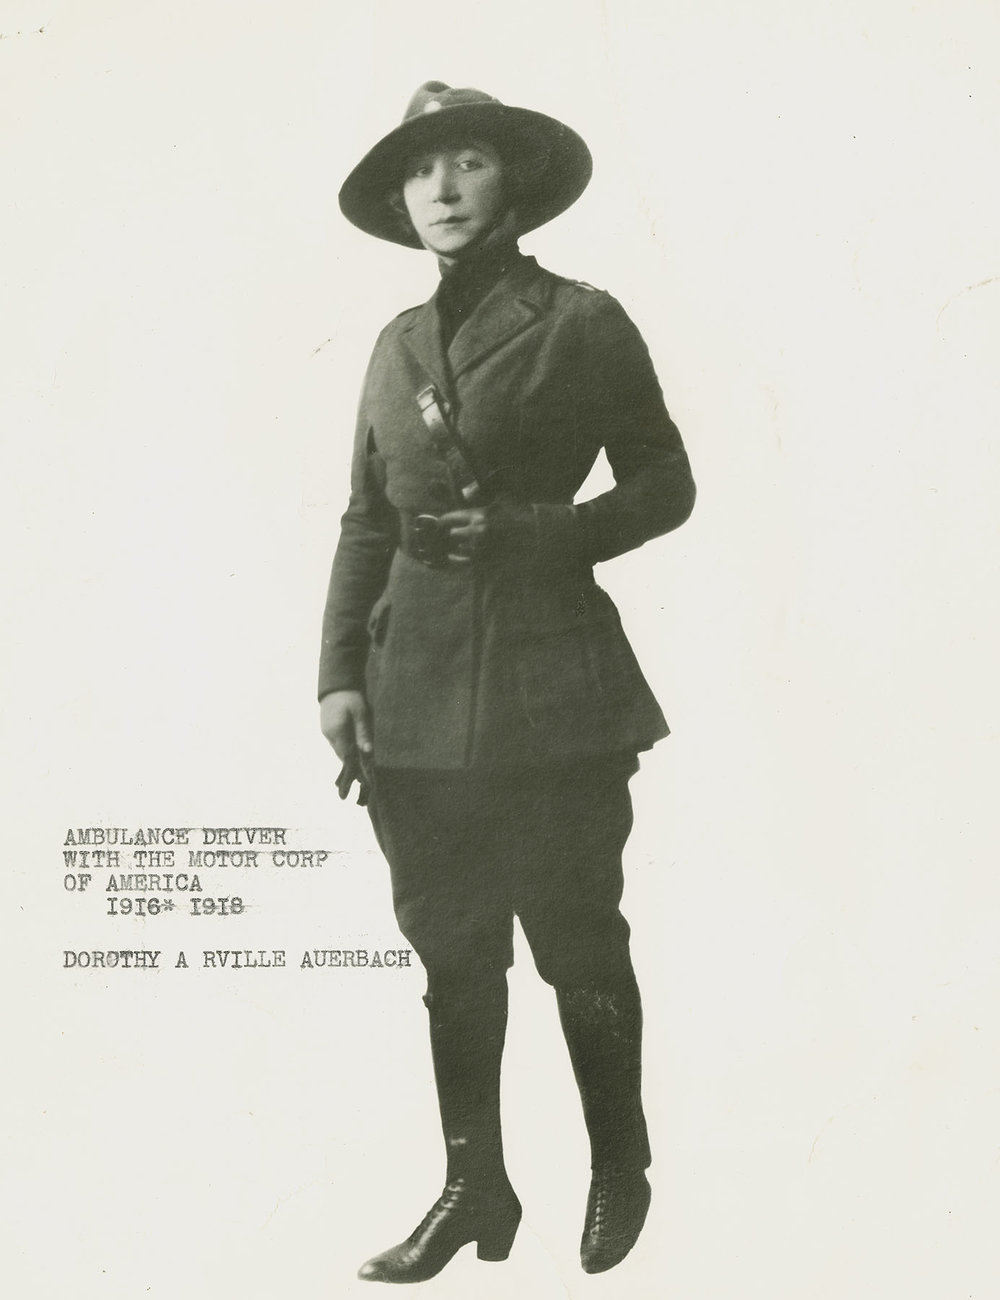 Dorothy Arville Auerbach, Nurse and Ambulance Driver with the Motor Corps of America, 1916-1918. Mayor LaGuardia Collection, NYC Municipal Archives.